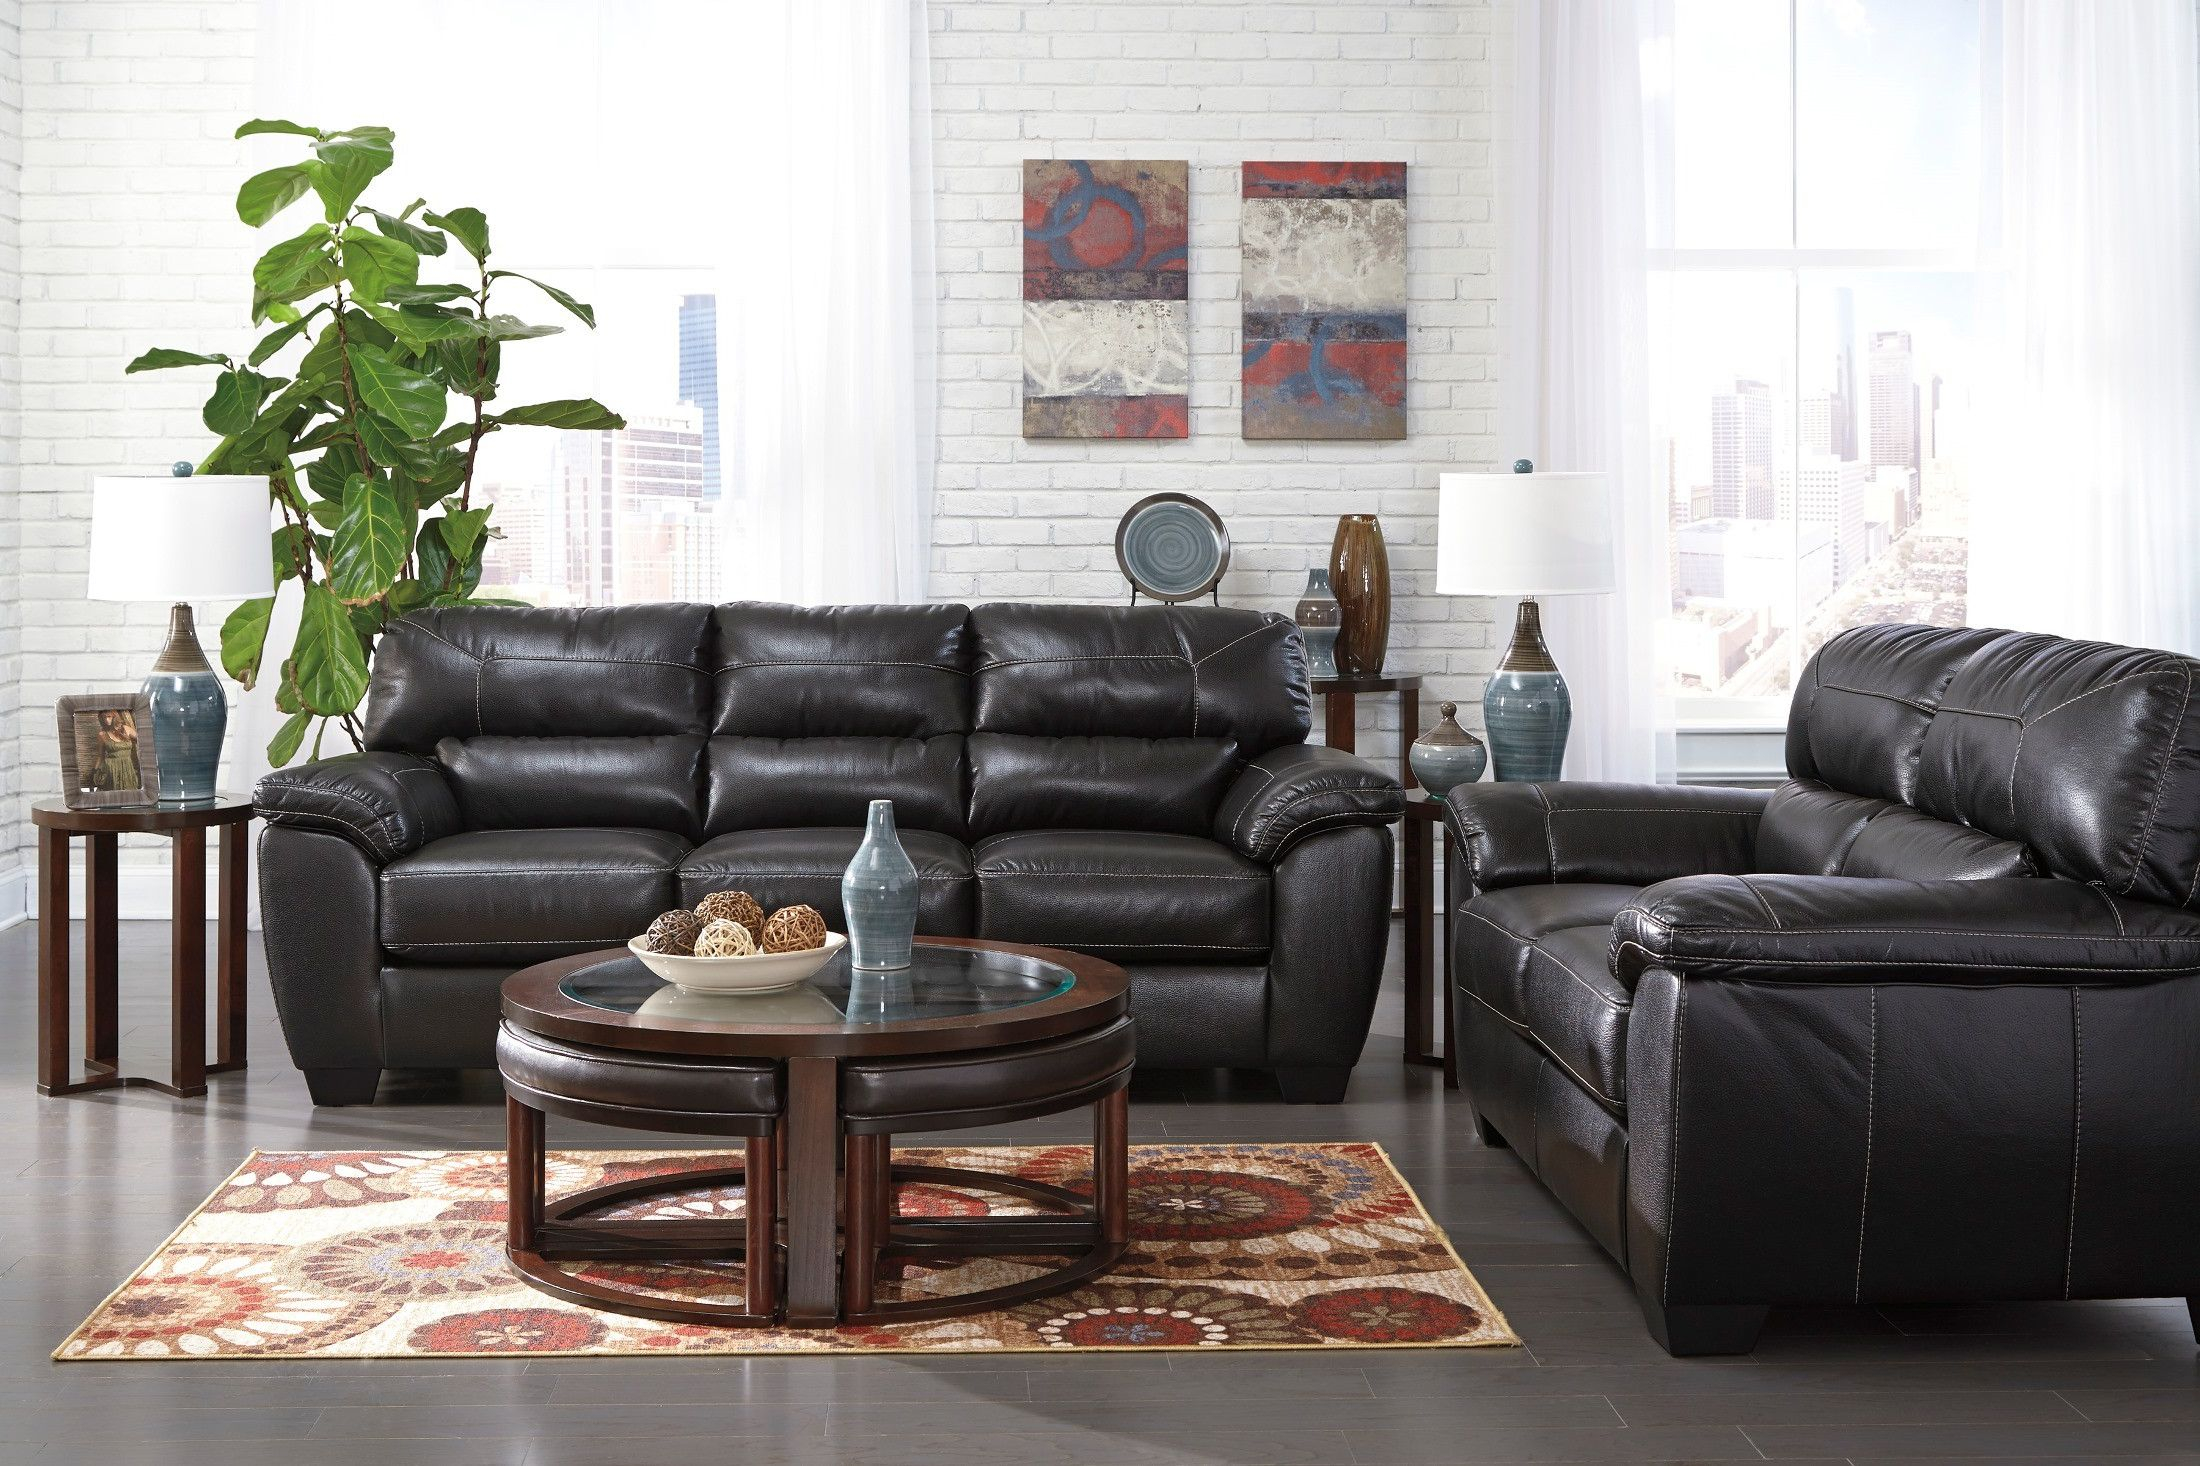 Furniture Entertaining Fancy Cheap Living Room Sets Under 500 For pertaining to 11 Clever Concepts of How to Makeover Discounted Living Room Sets